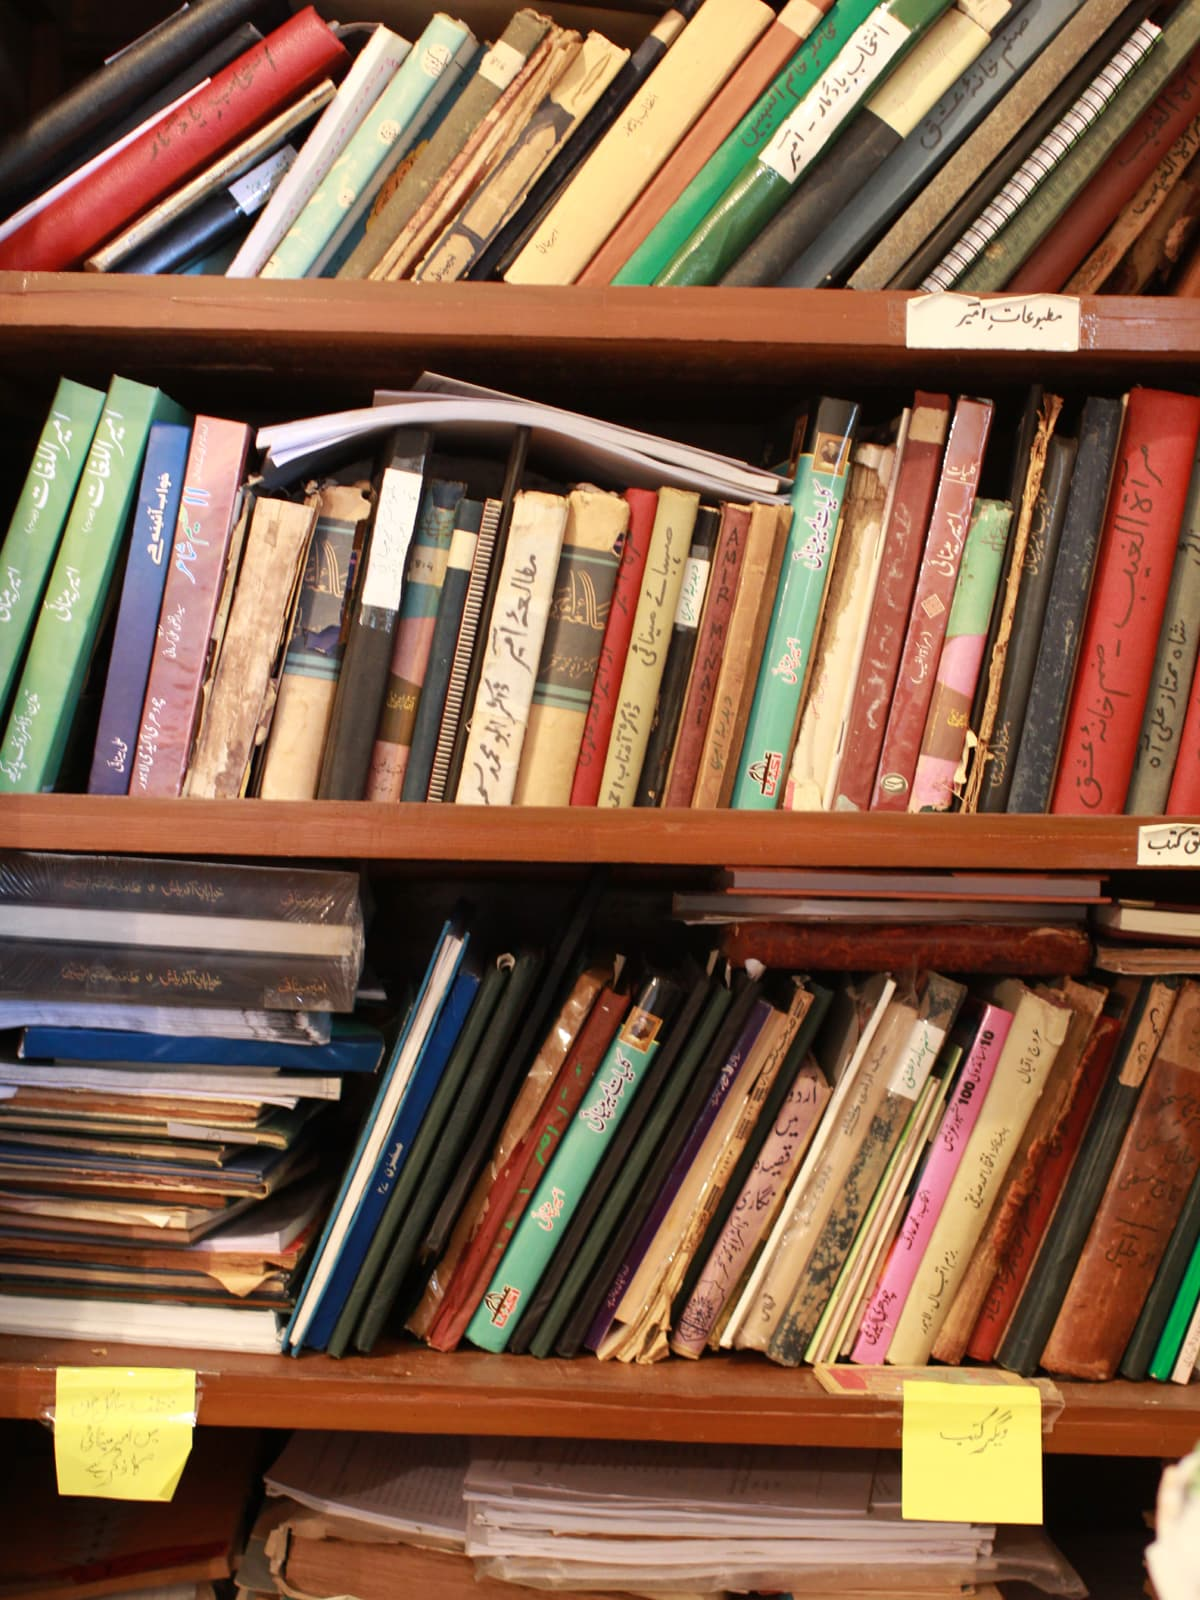 Opposite: A cupboard in Israil Minai's study where books by, and about, Ameer Minai are kept